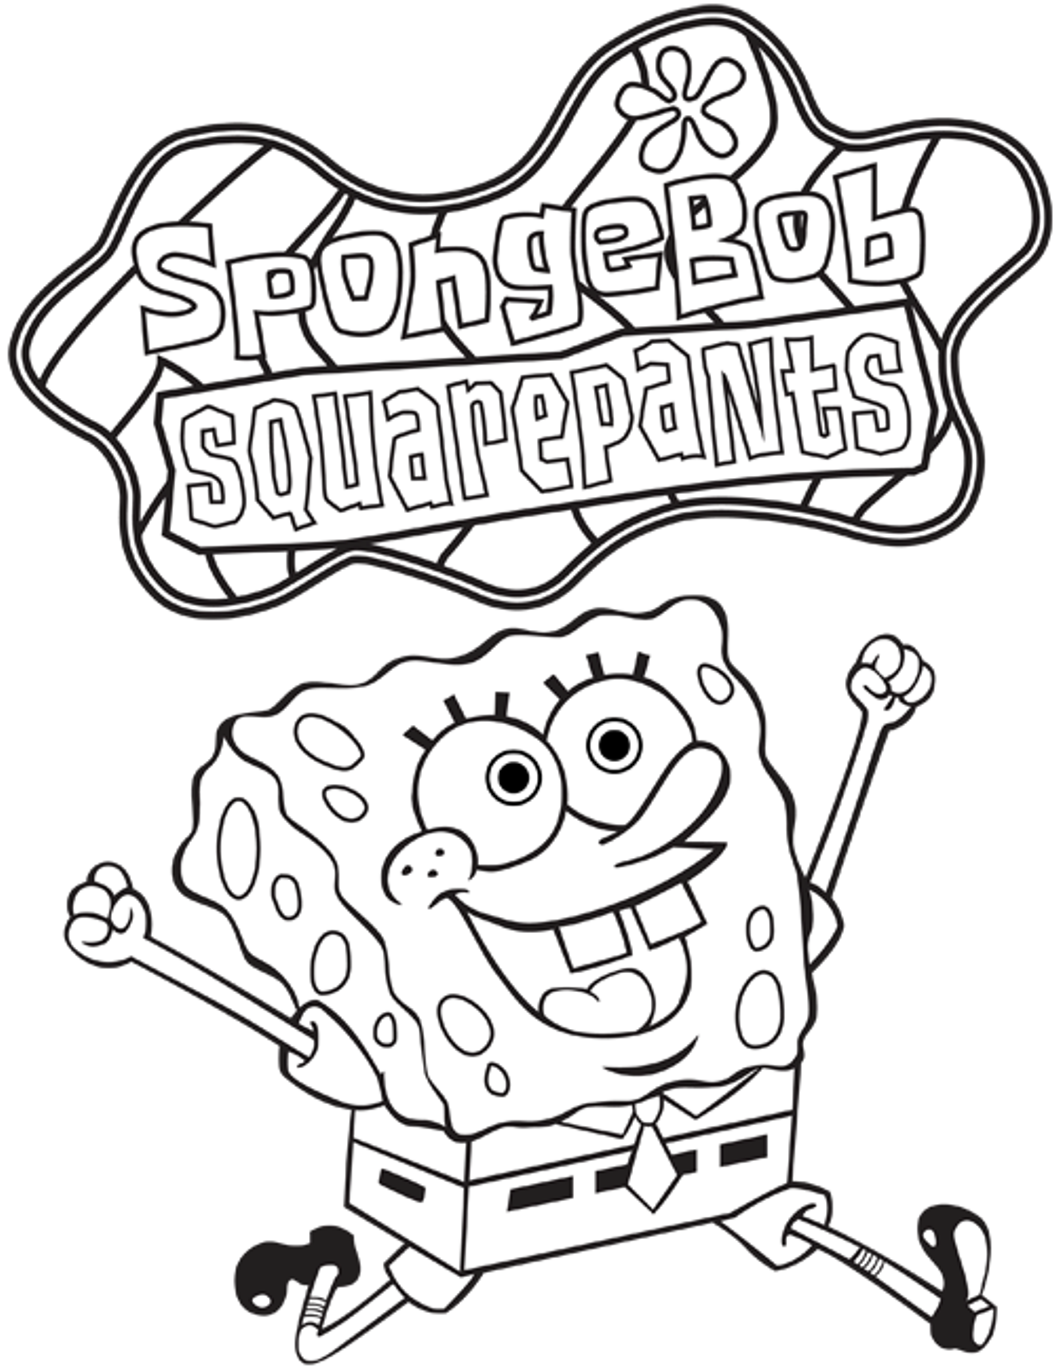 Free nickelodeon spongebob coloring pages for kids for Spongebob free coloring pages